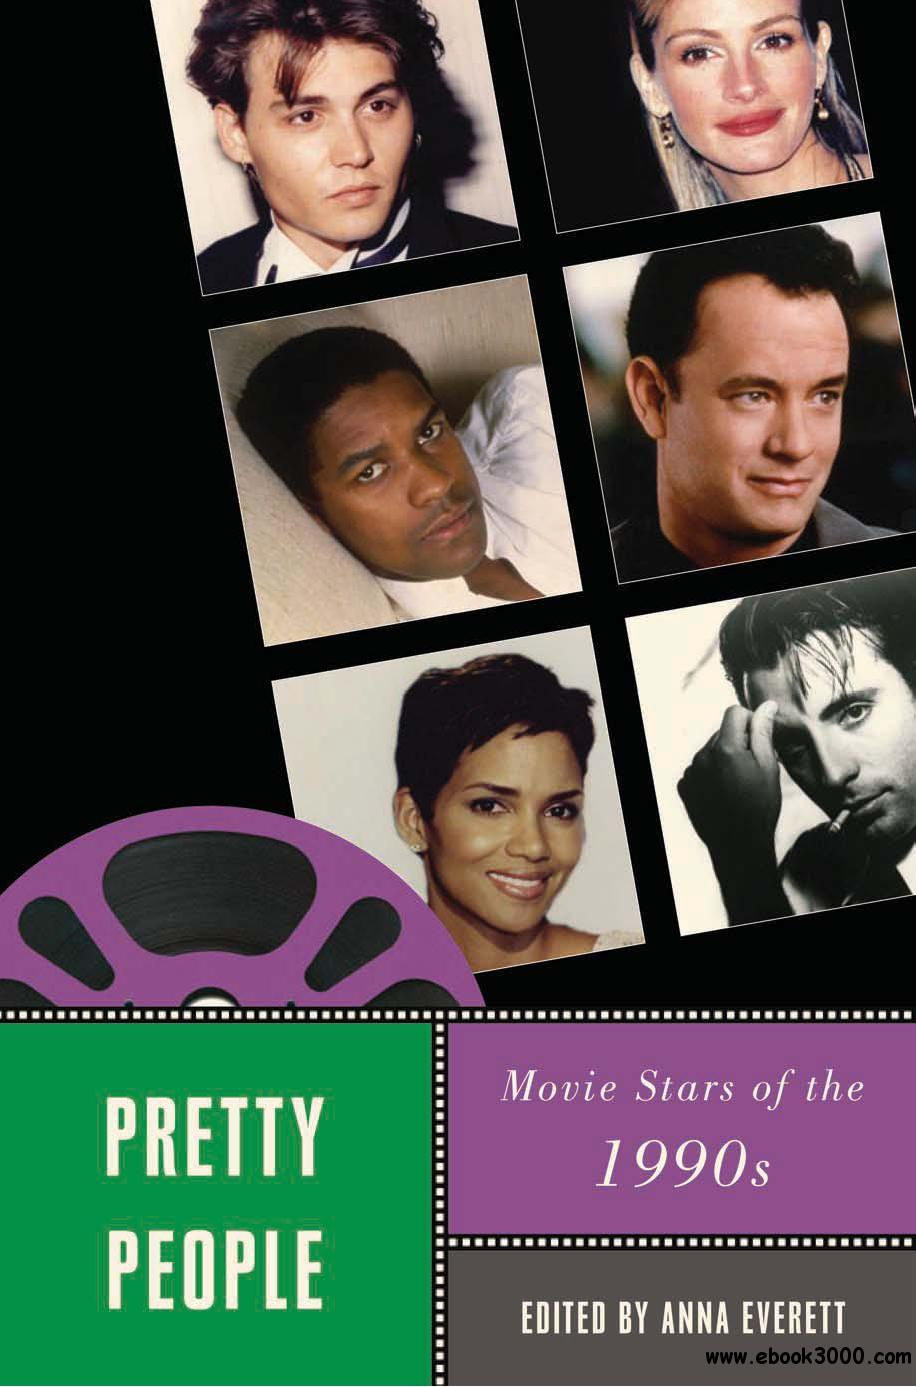 Pretty People: Movie Stars of the 1990s download dree